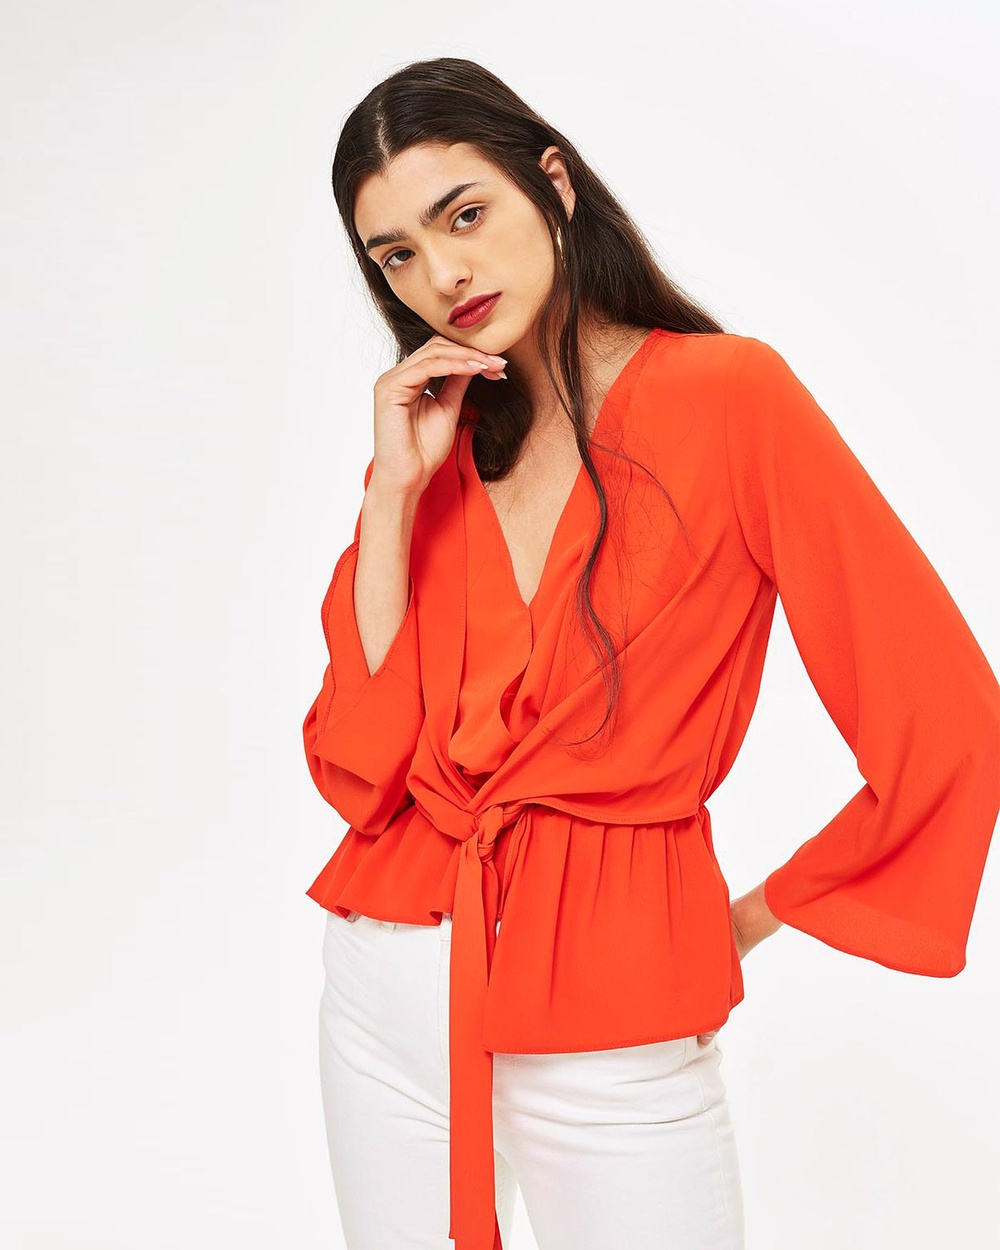 TOPSHOP Knot Front Asymmetric Blouse Tops Red Knot Front Asymmetric Blouse